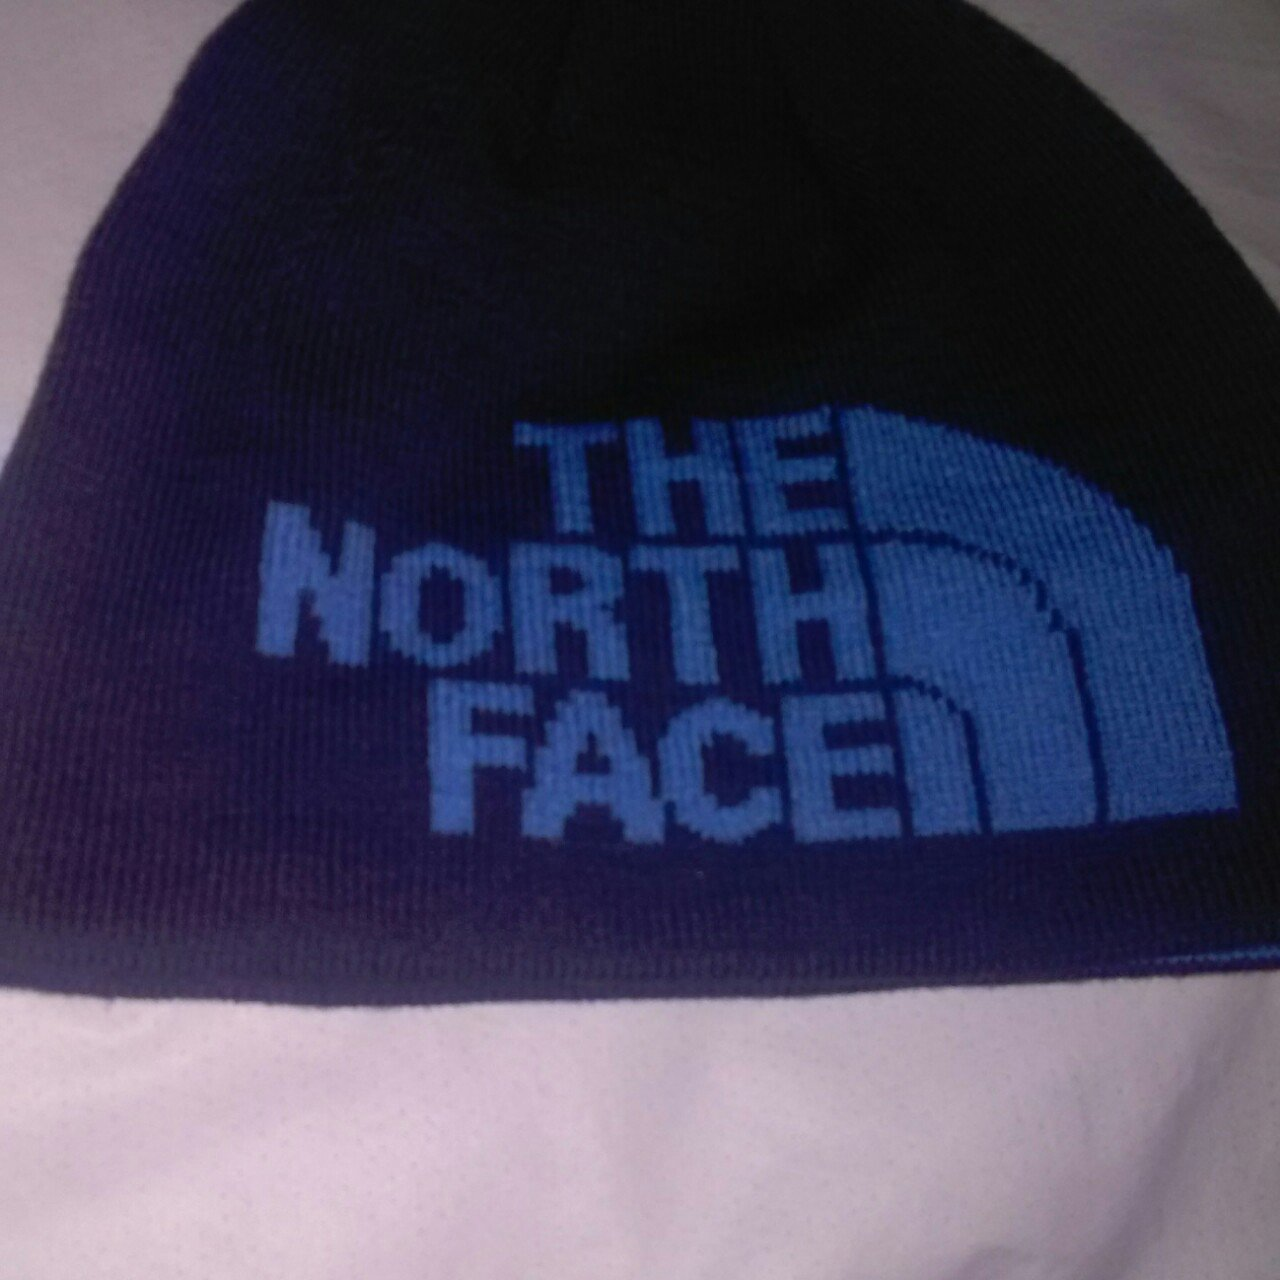 The North face unisex hat one size New without tag Navy - Depop b896afcf9a8